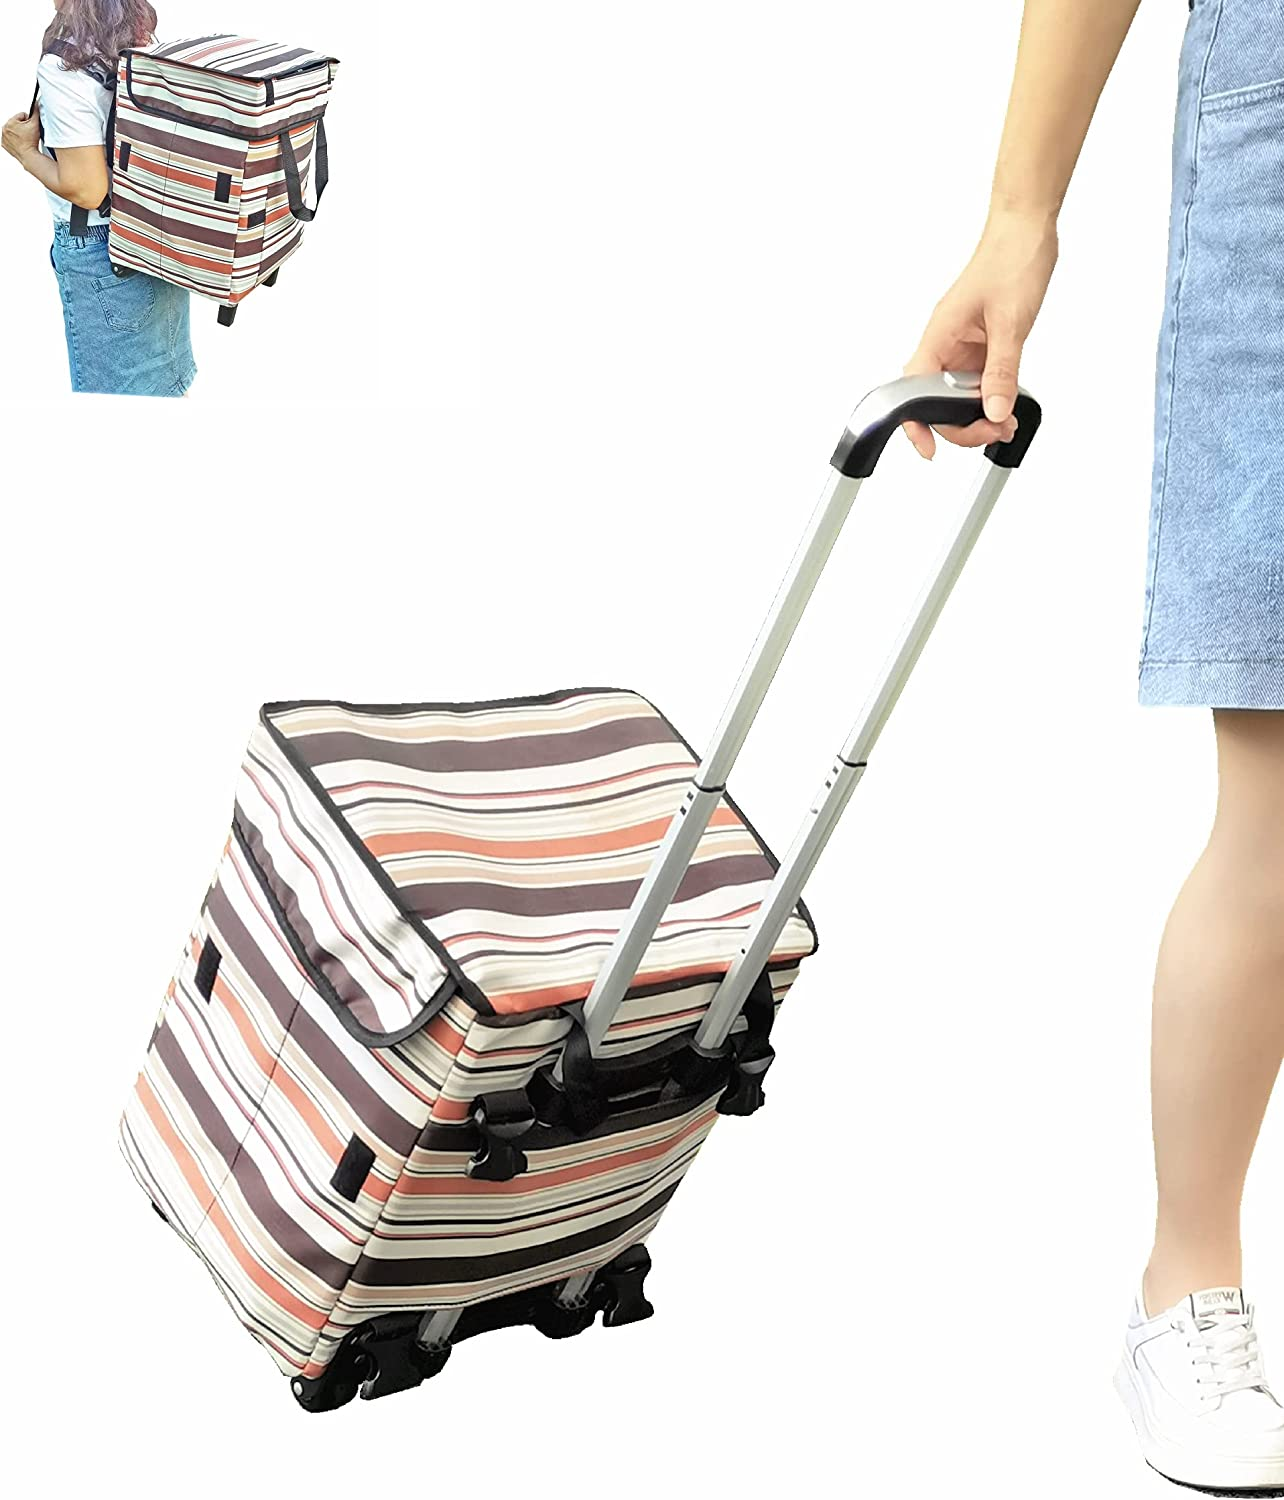 Shopping Cart with Wheels for Groceries - Fineget Kitchen Foldable Rolling Beach Picnic Laundry Reusable Trolley Tote Bag for Lady Women Senior Teacher Duffel Cooking Food Delivery Backpack Straps